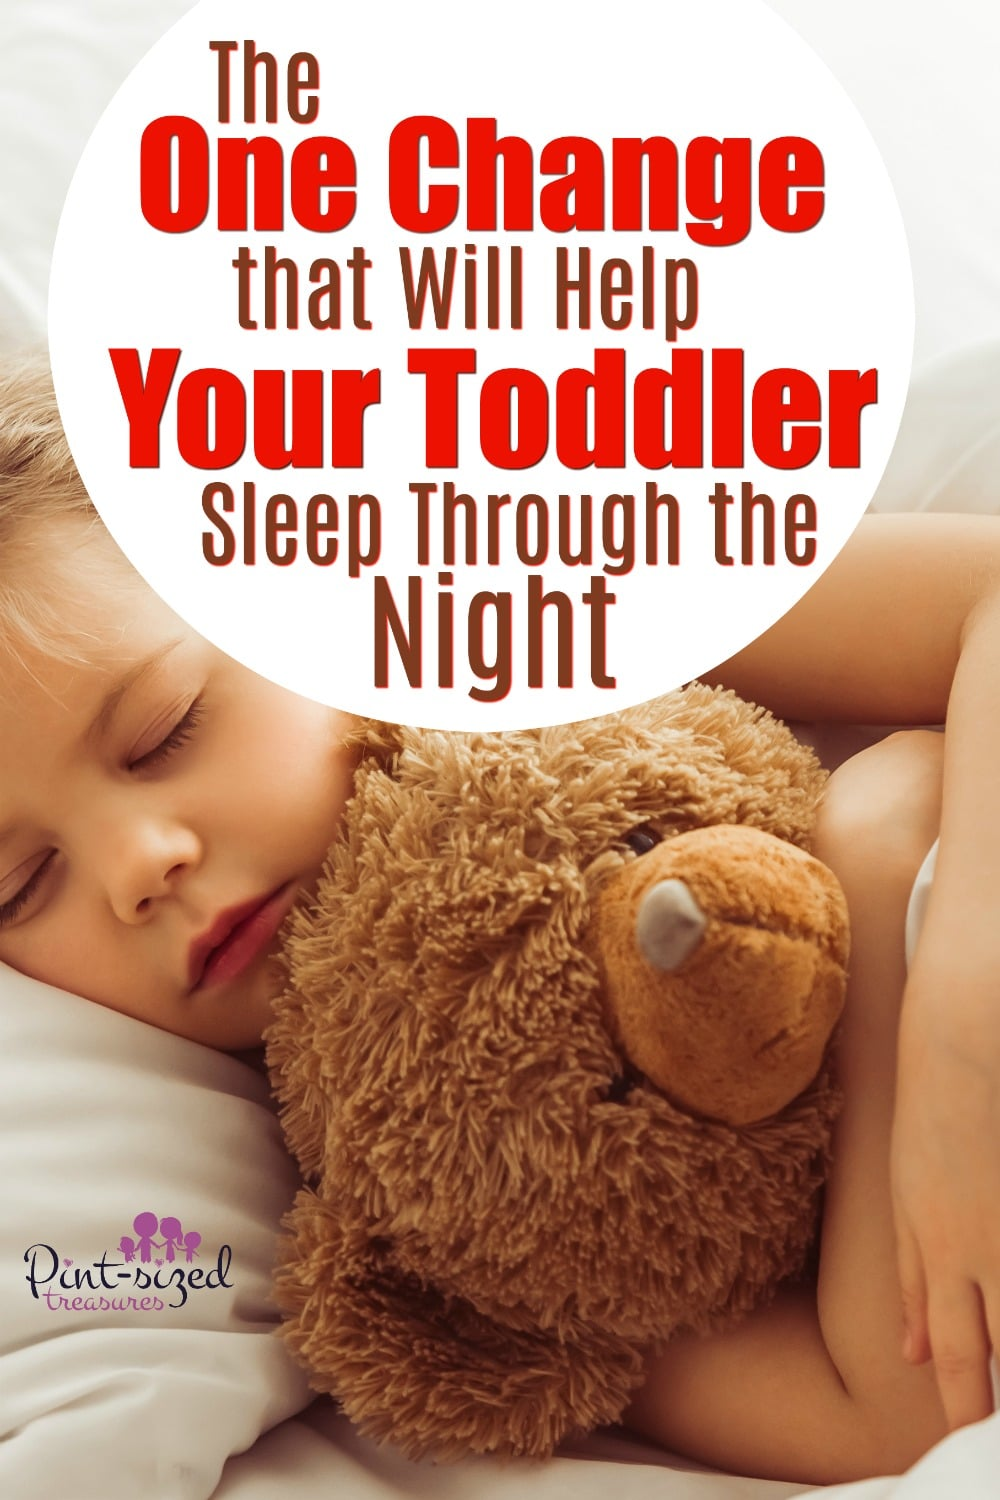 One change that helps toddlers sleep through the night